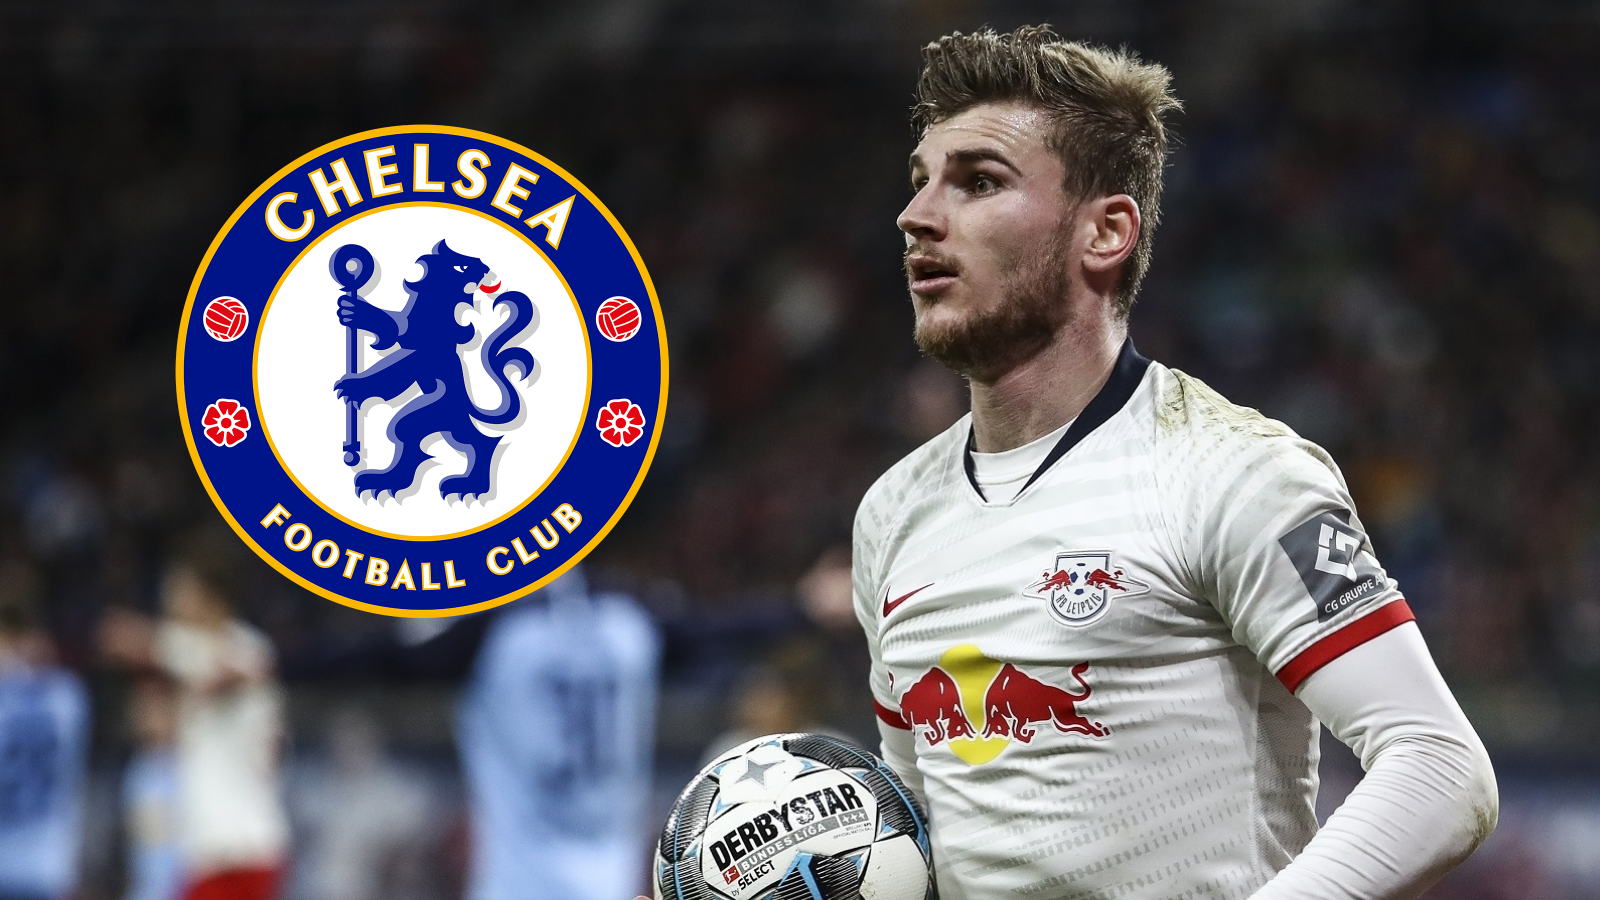 Chelsea agree to pay Werner's £54m release clause as they offer contract to Leipzig striker - Goal.com